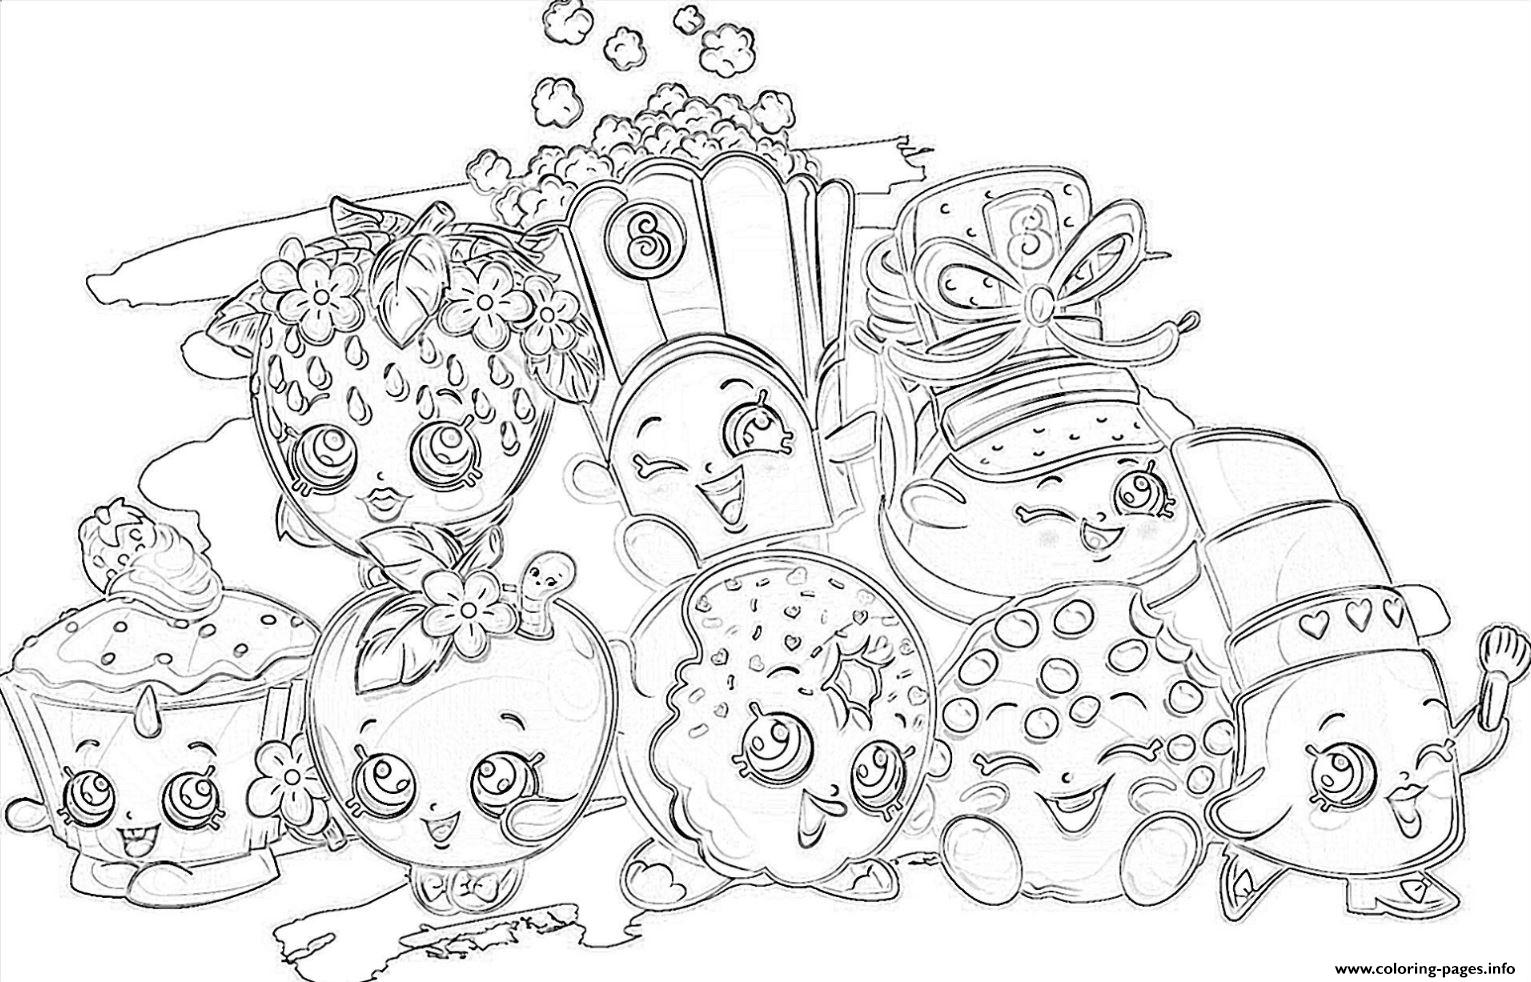 shopkins all the family coloring pages printable